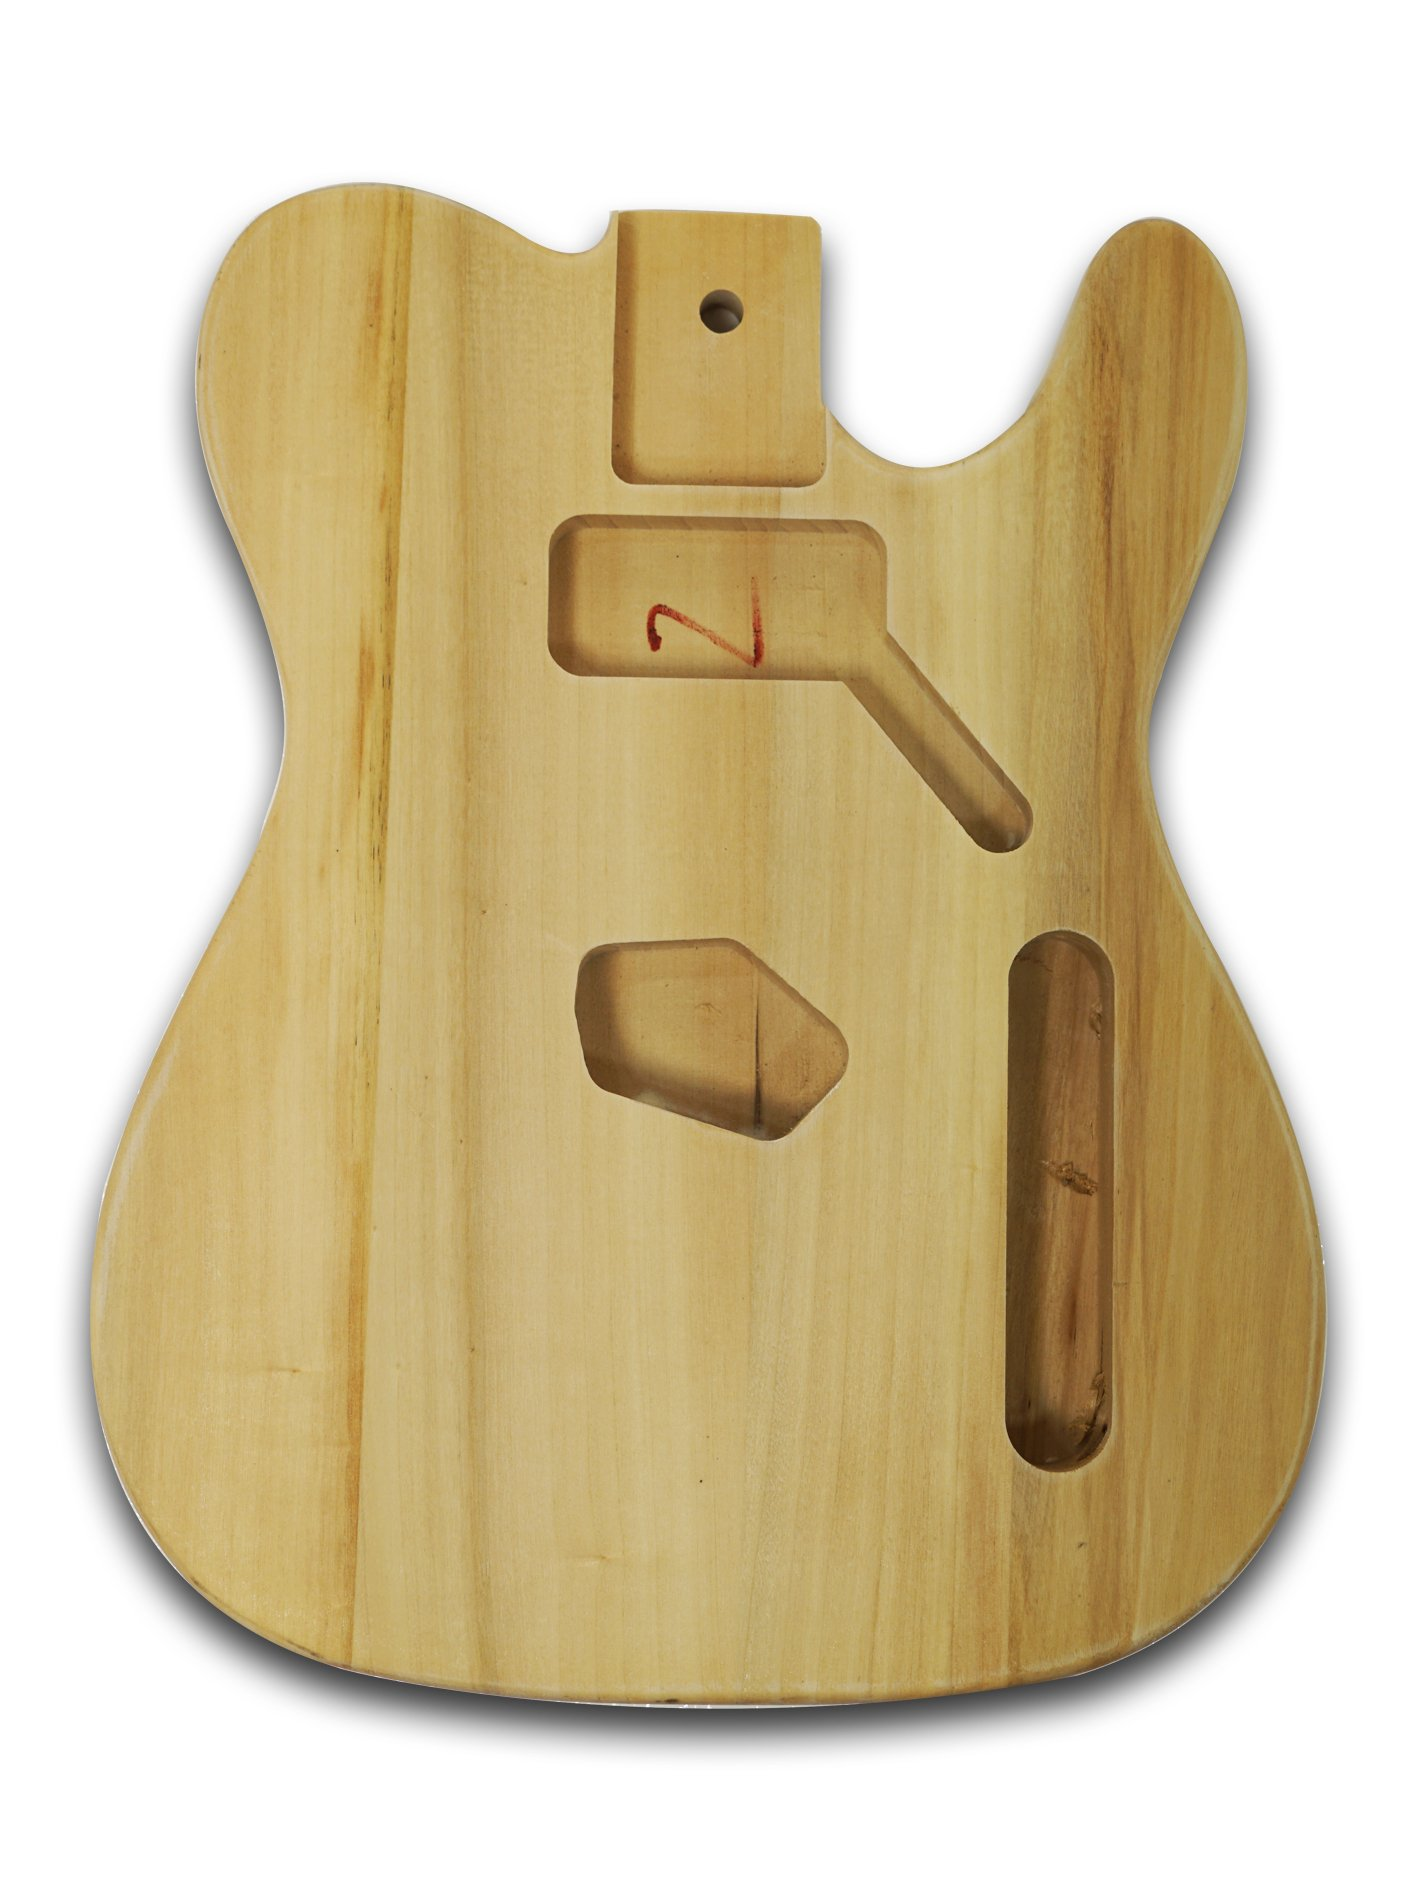 Unfinished Guitar Body For Telecaster Electric Guitar, Bass Wood Made